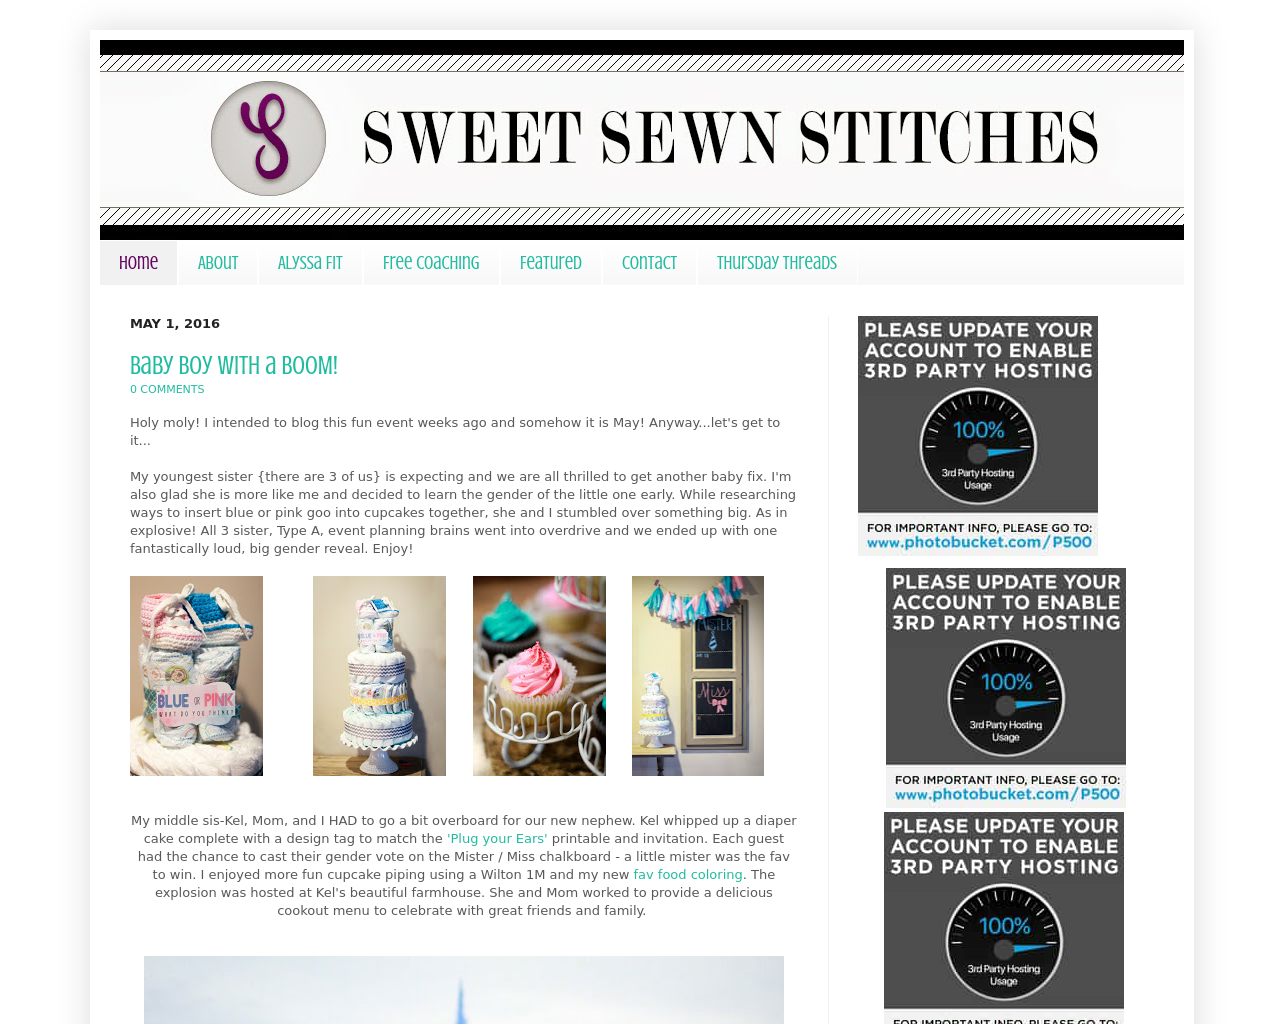 Sweet-Sewn-Stitches-Advertising-Reviews-Pricing